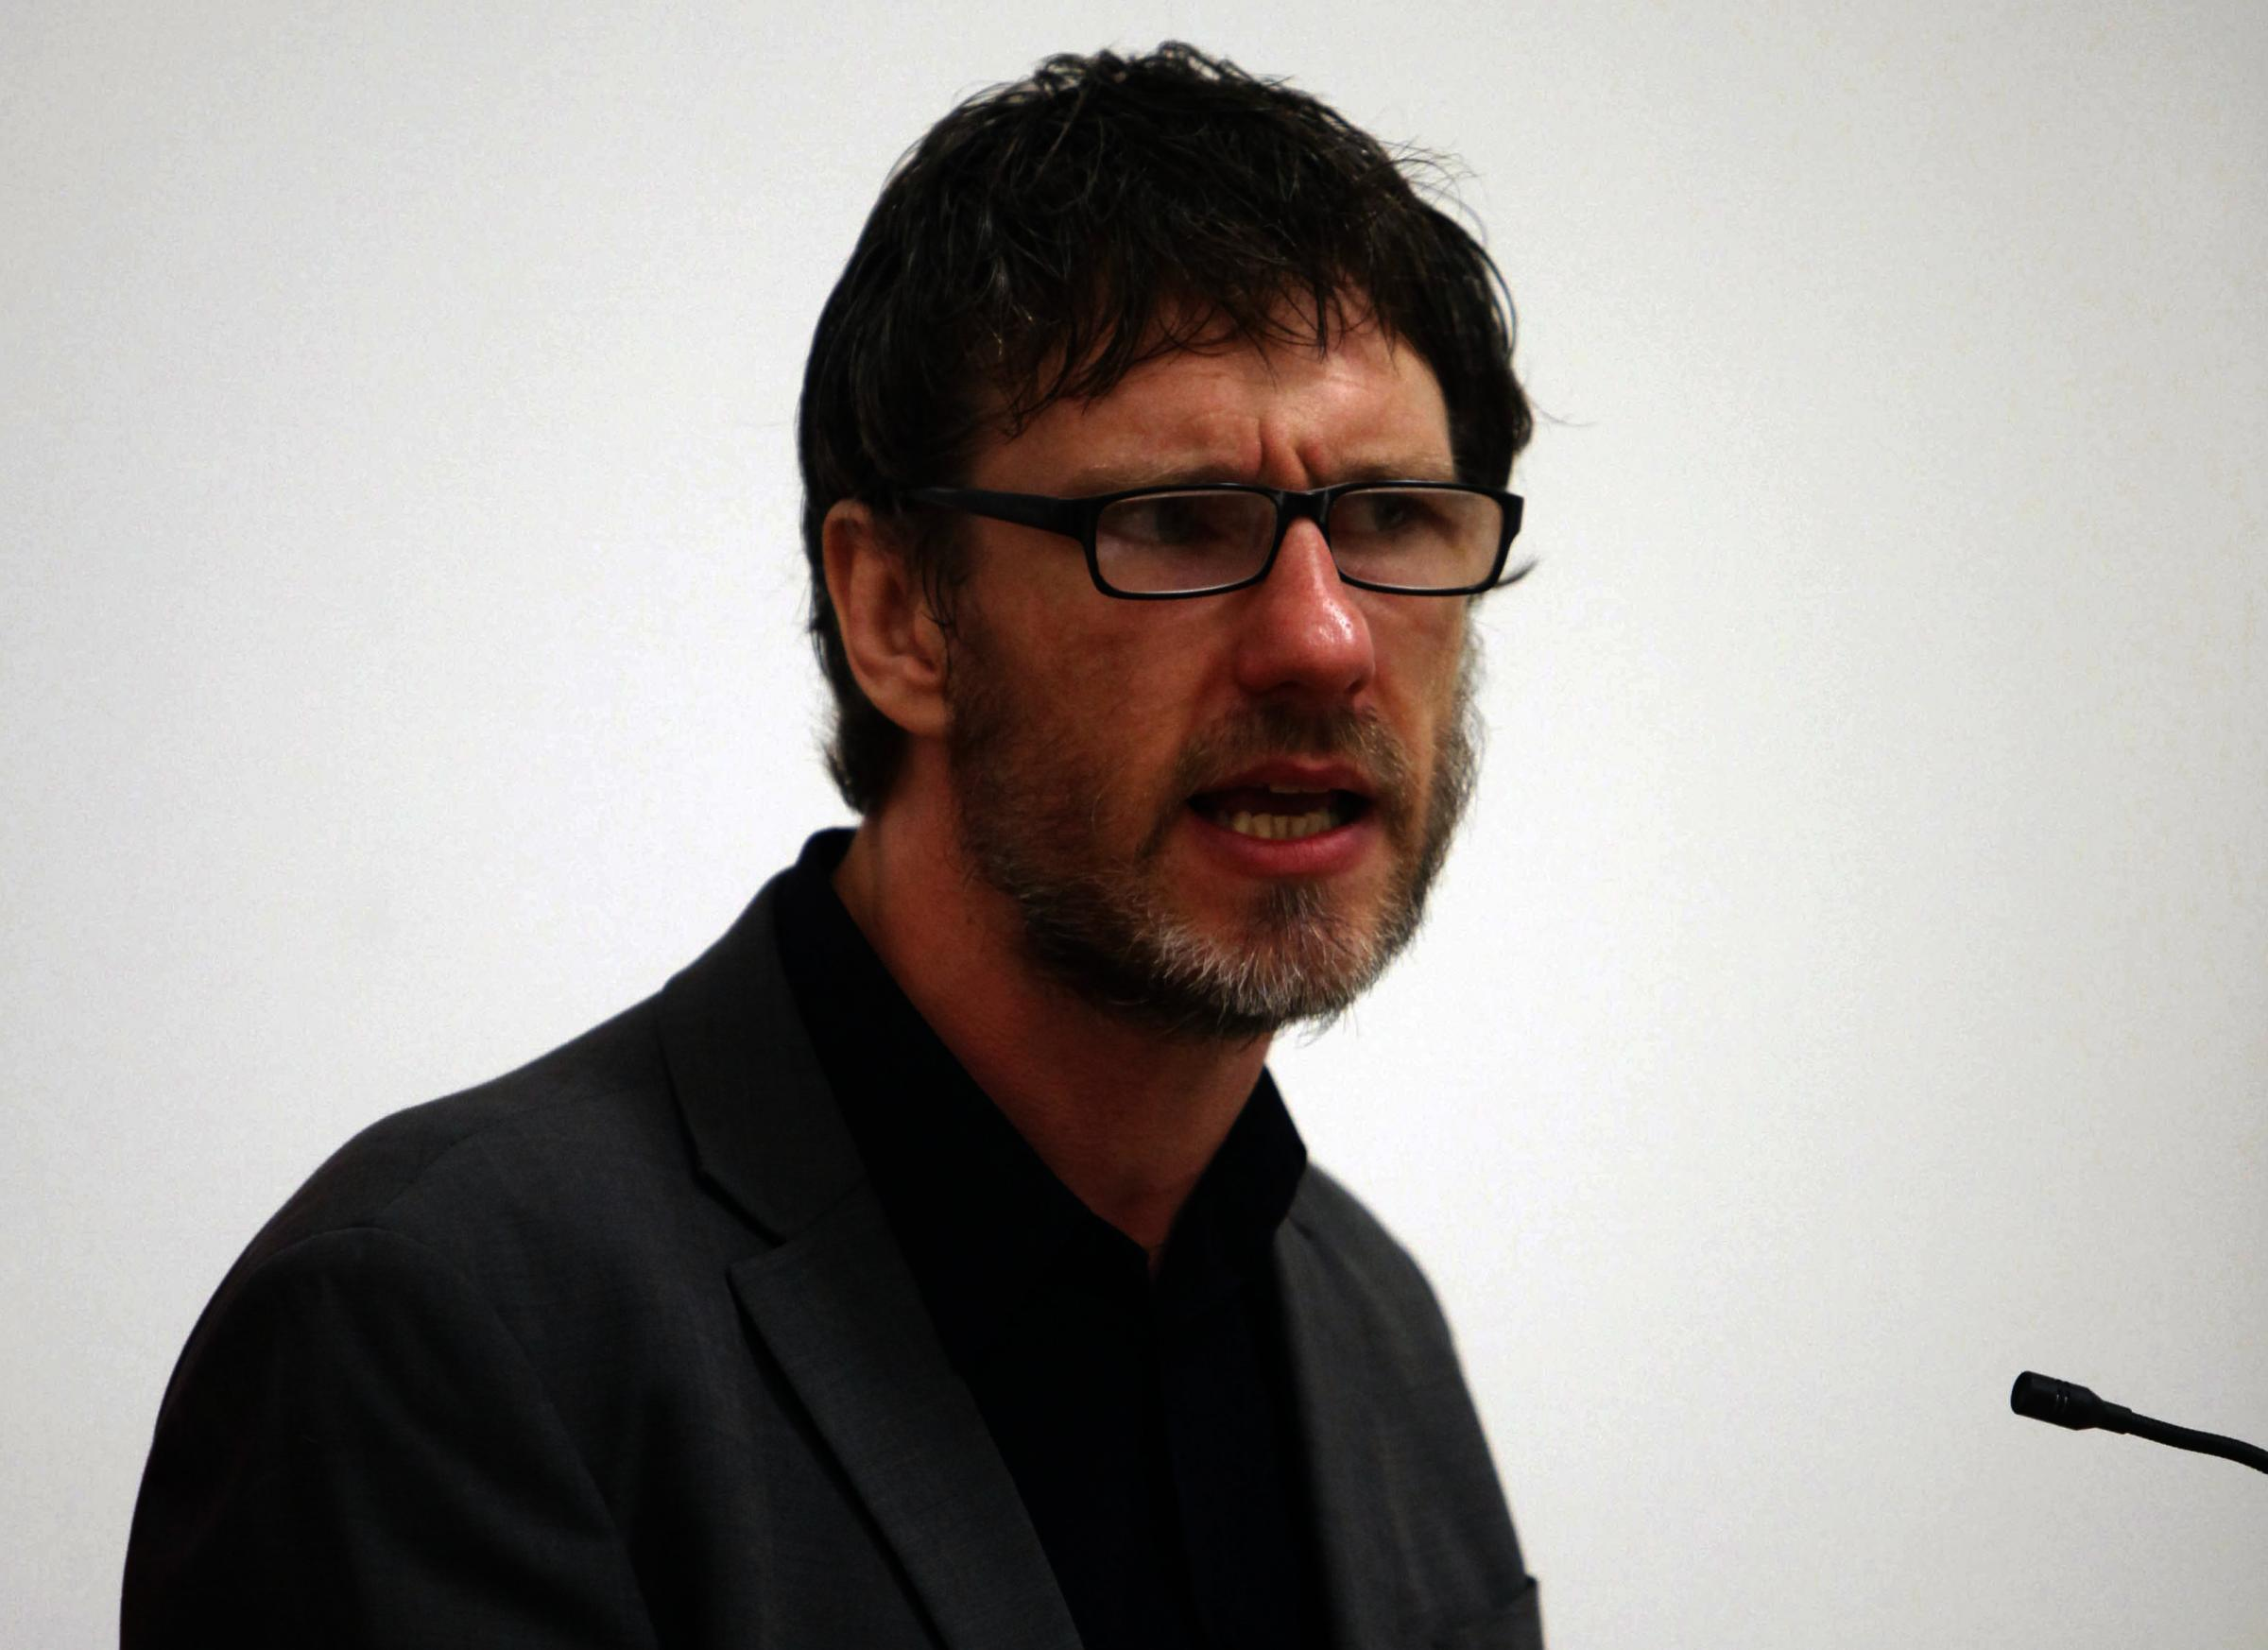 Robin McAlpine has highlighted the importance of reaching out to undecided voters